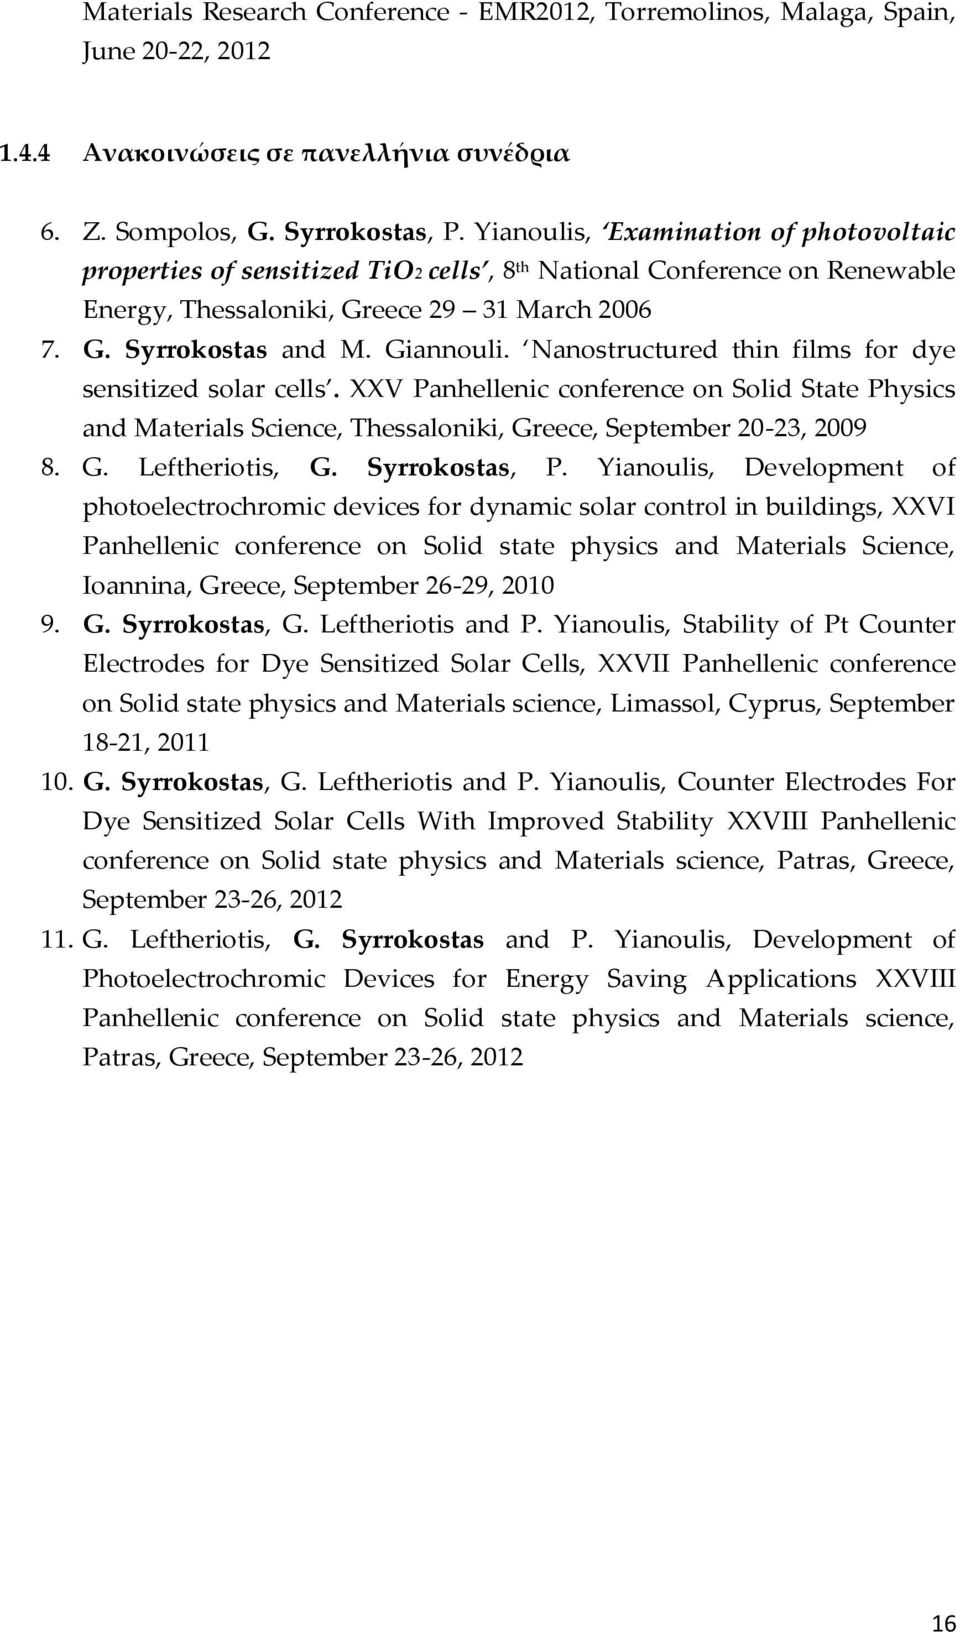 Nanostructured thin films for dye sensitized solar cells. XXV Panhellenic conference on Solid State Physics and Materials Science, Thessaloniki, Greece, September 20-23, 2009 8. G. Leftheriotis, G.